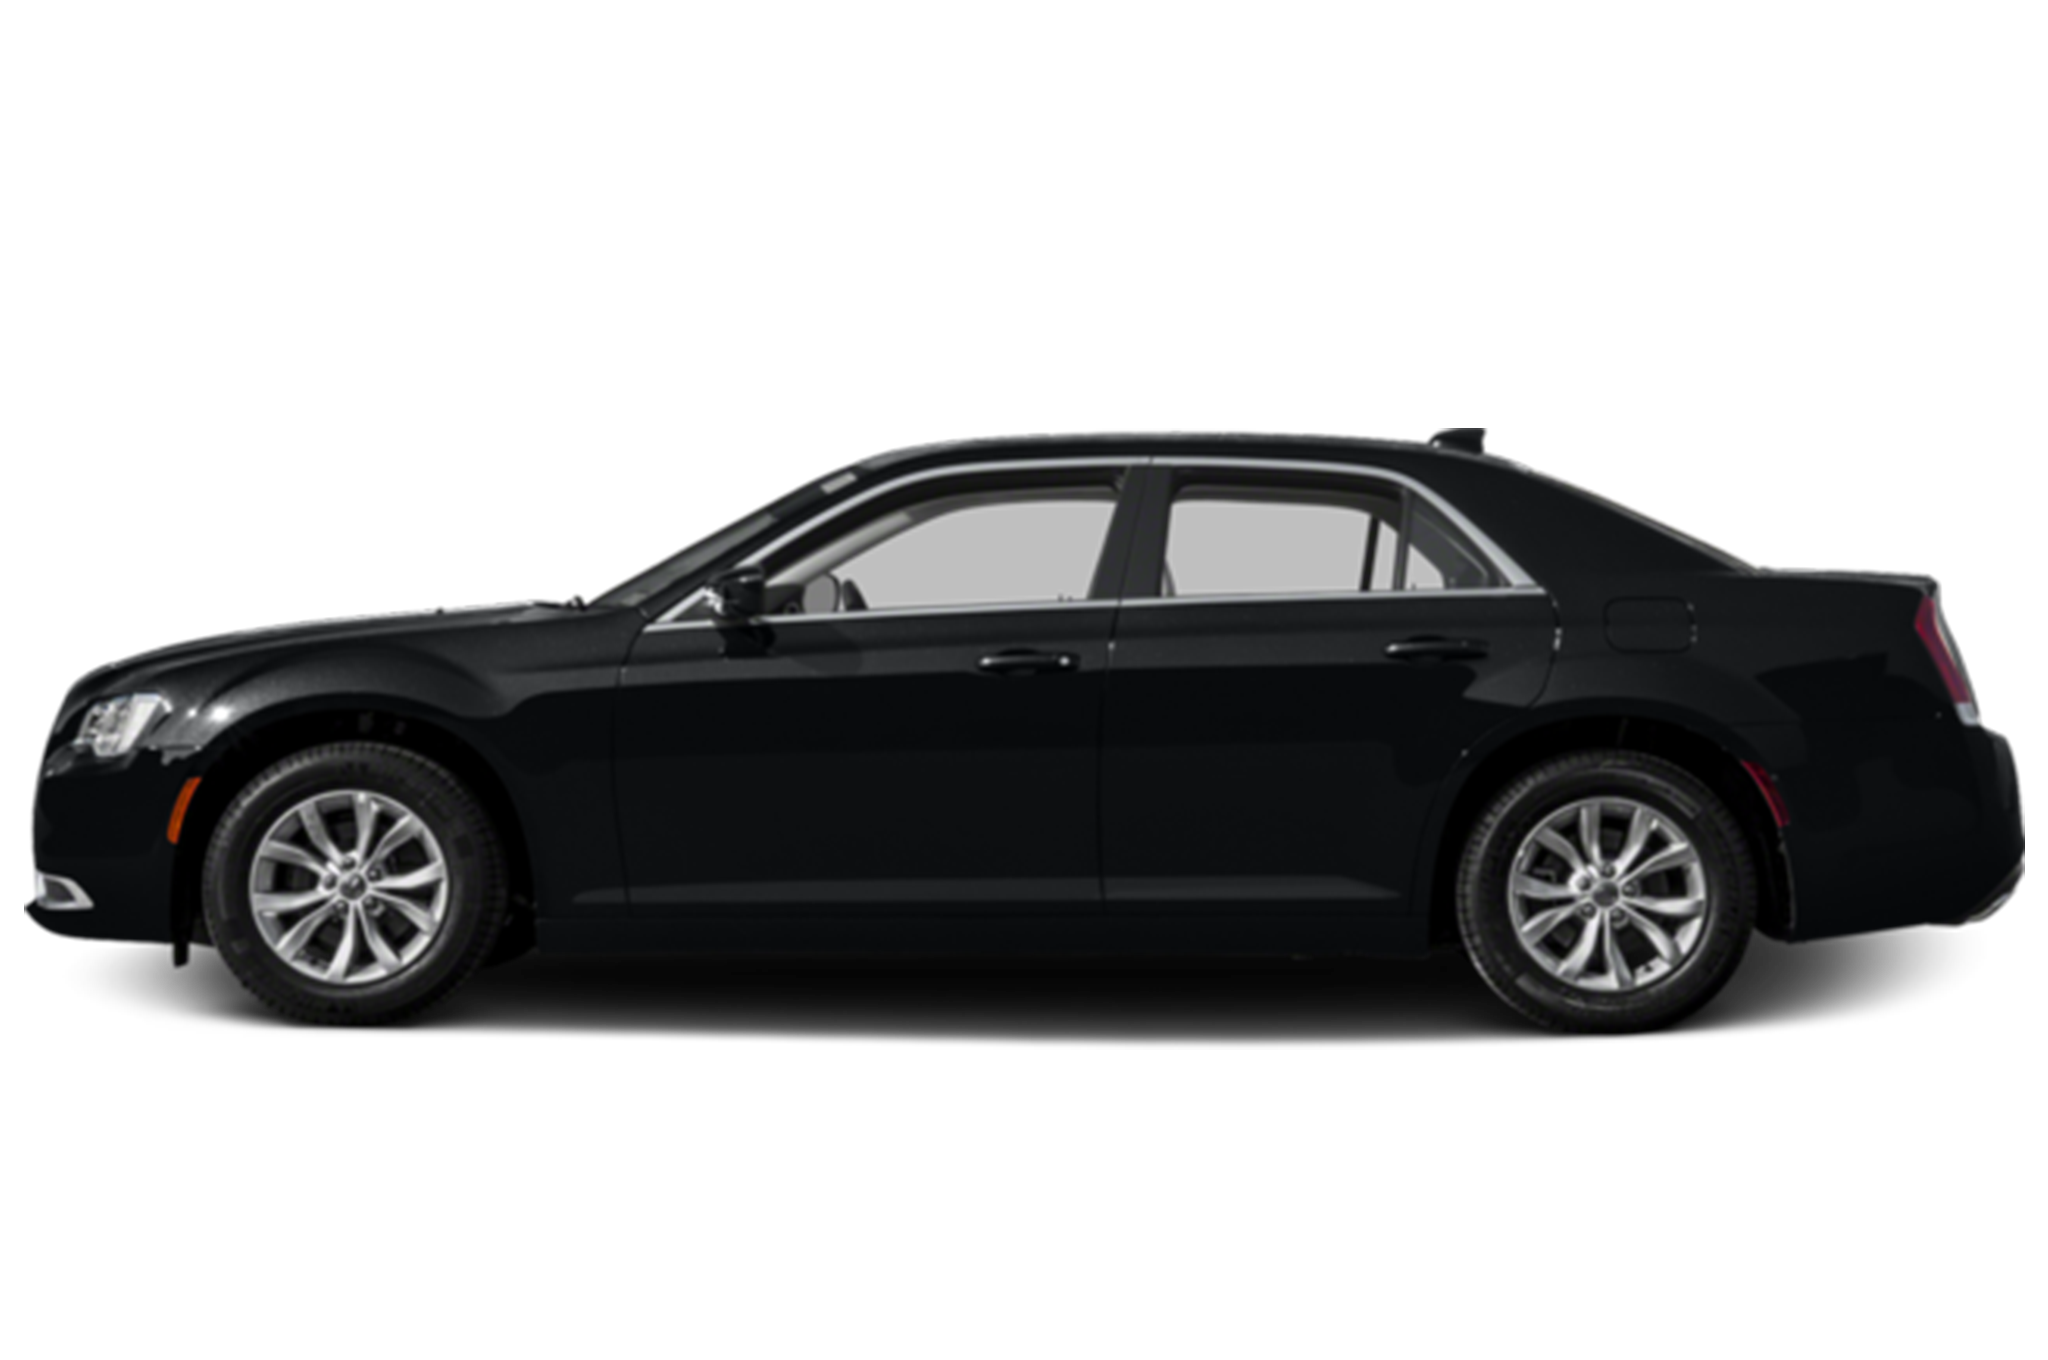 New Chrysler 300 S Delray Beach FL